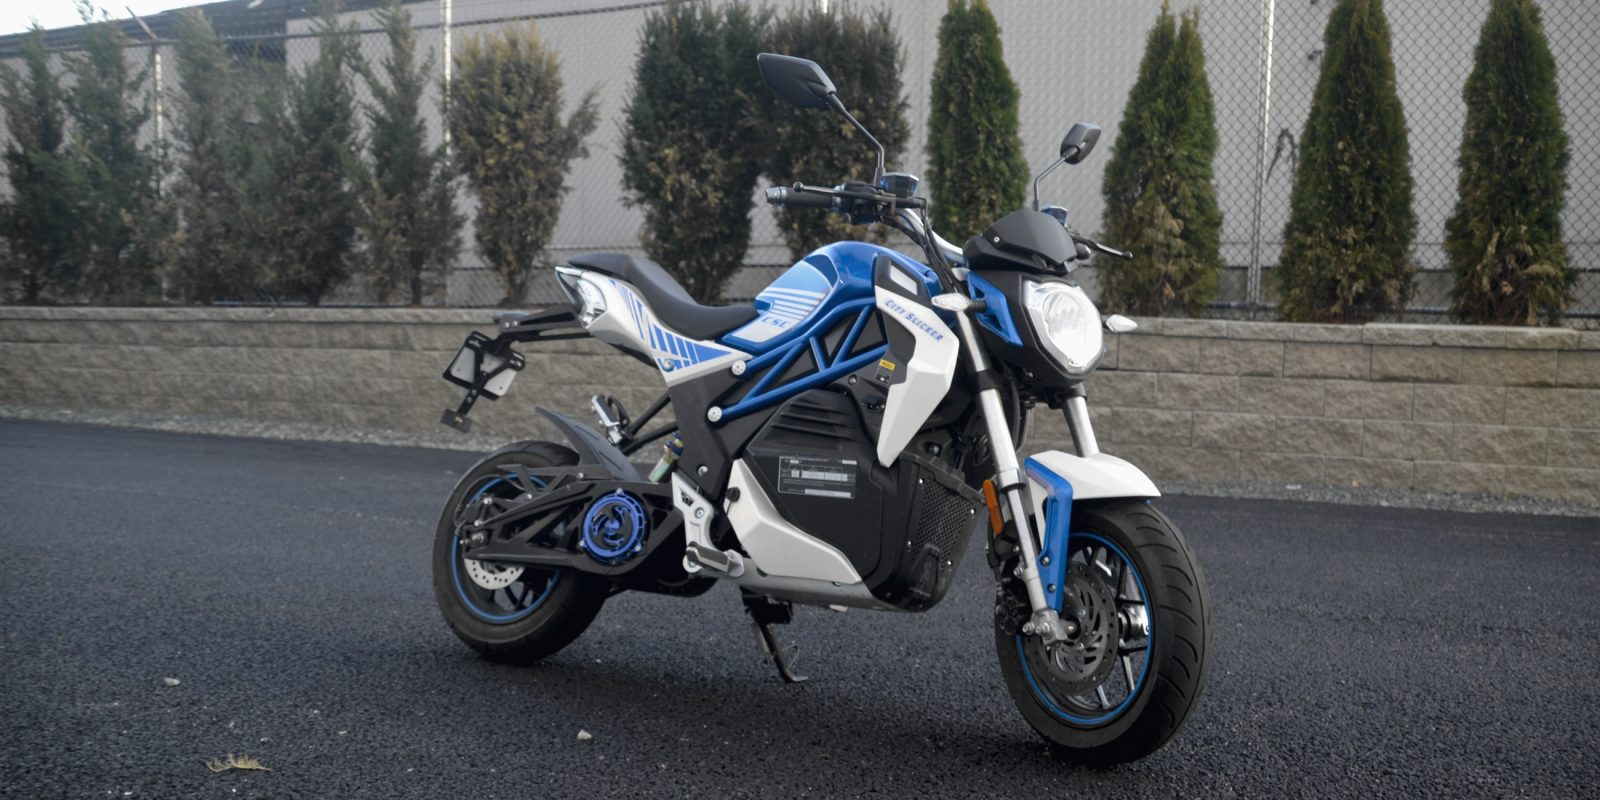 Review: The $2,495 CSC City Slicker electric motorcycle is